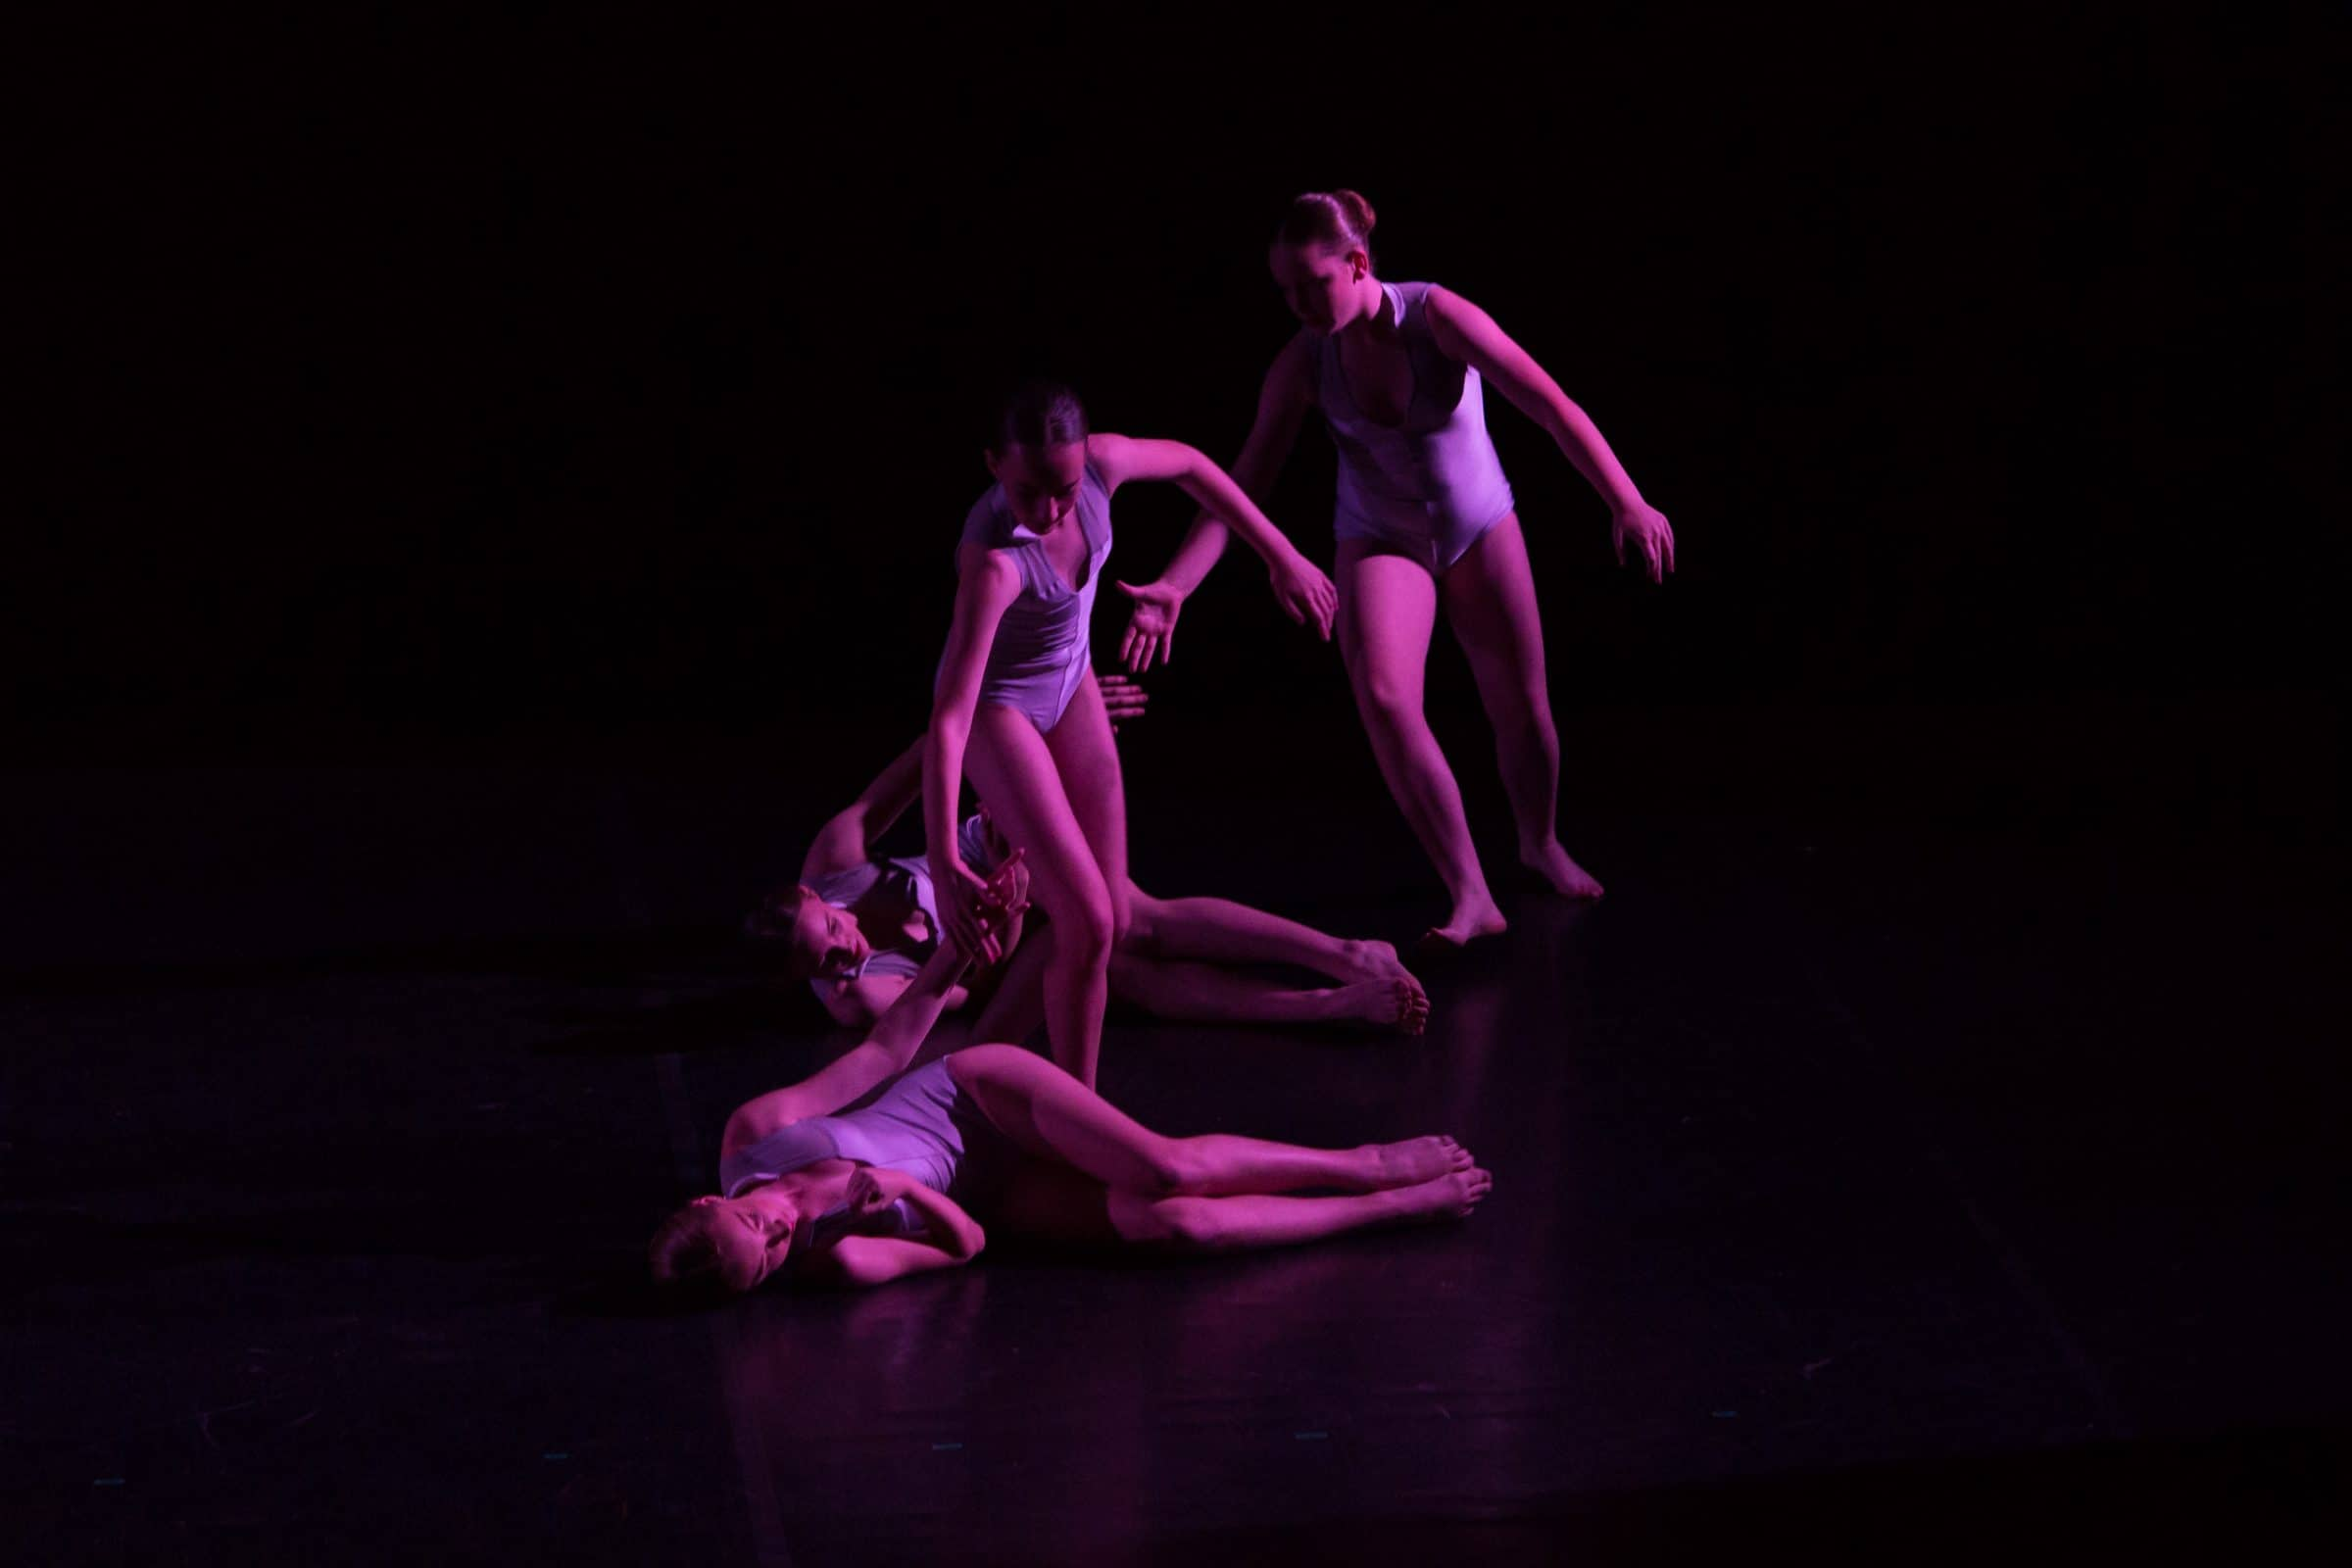 Dancers and the need for sleep and adequate rest